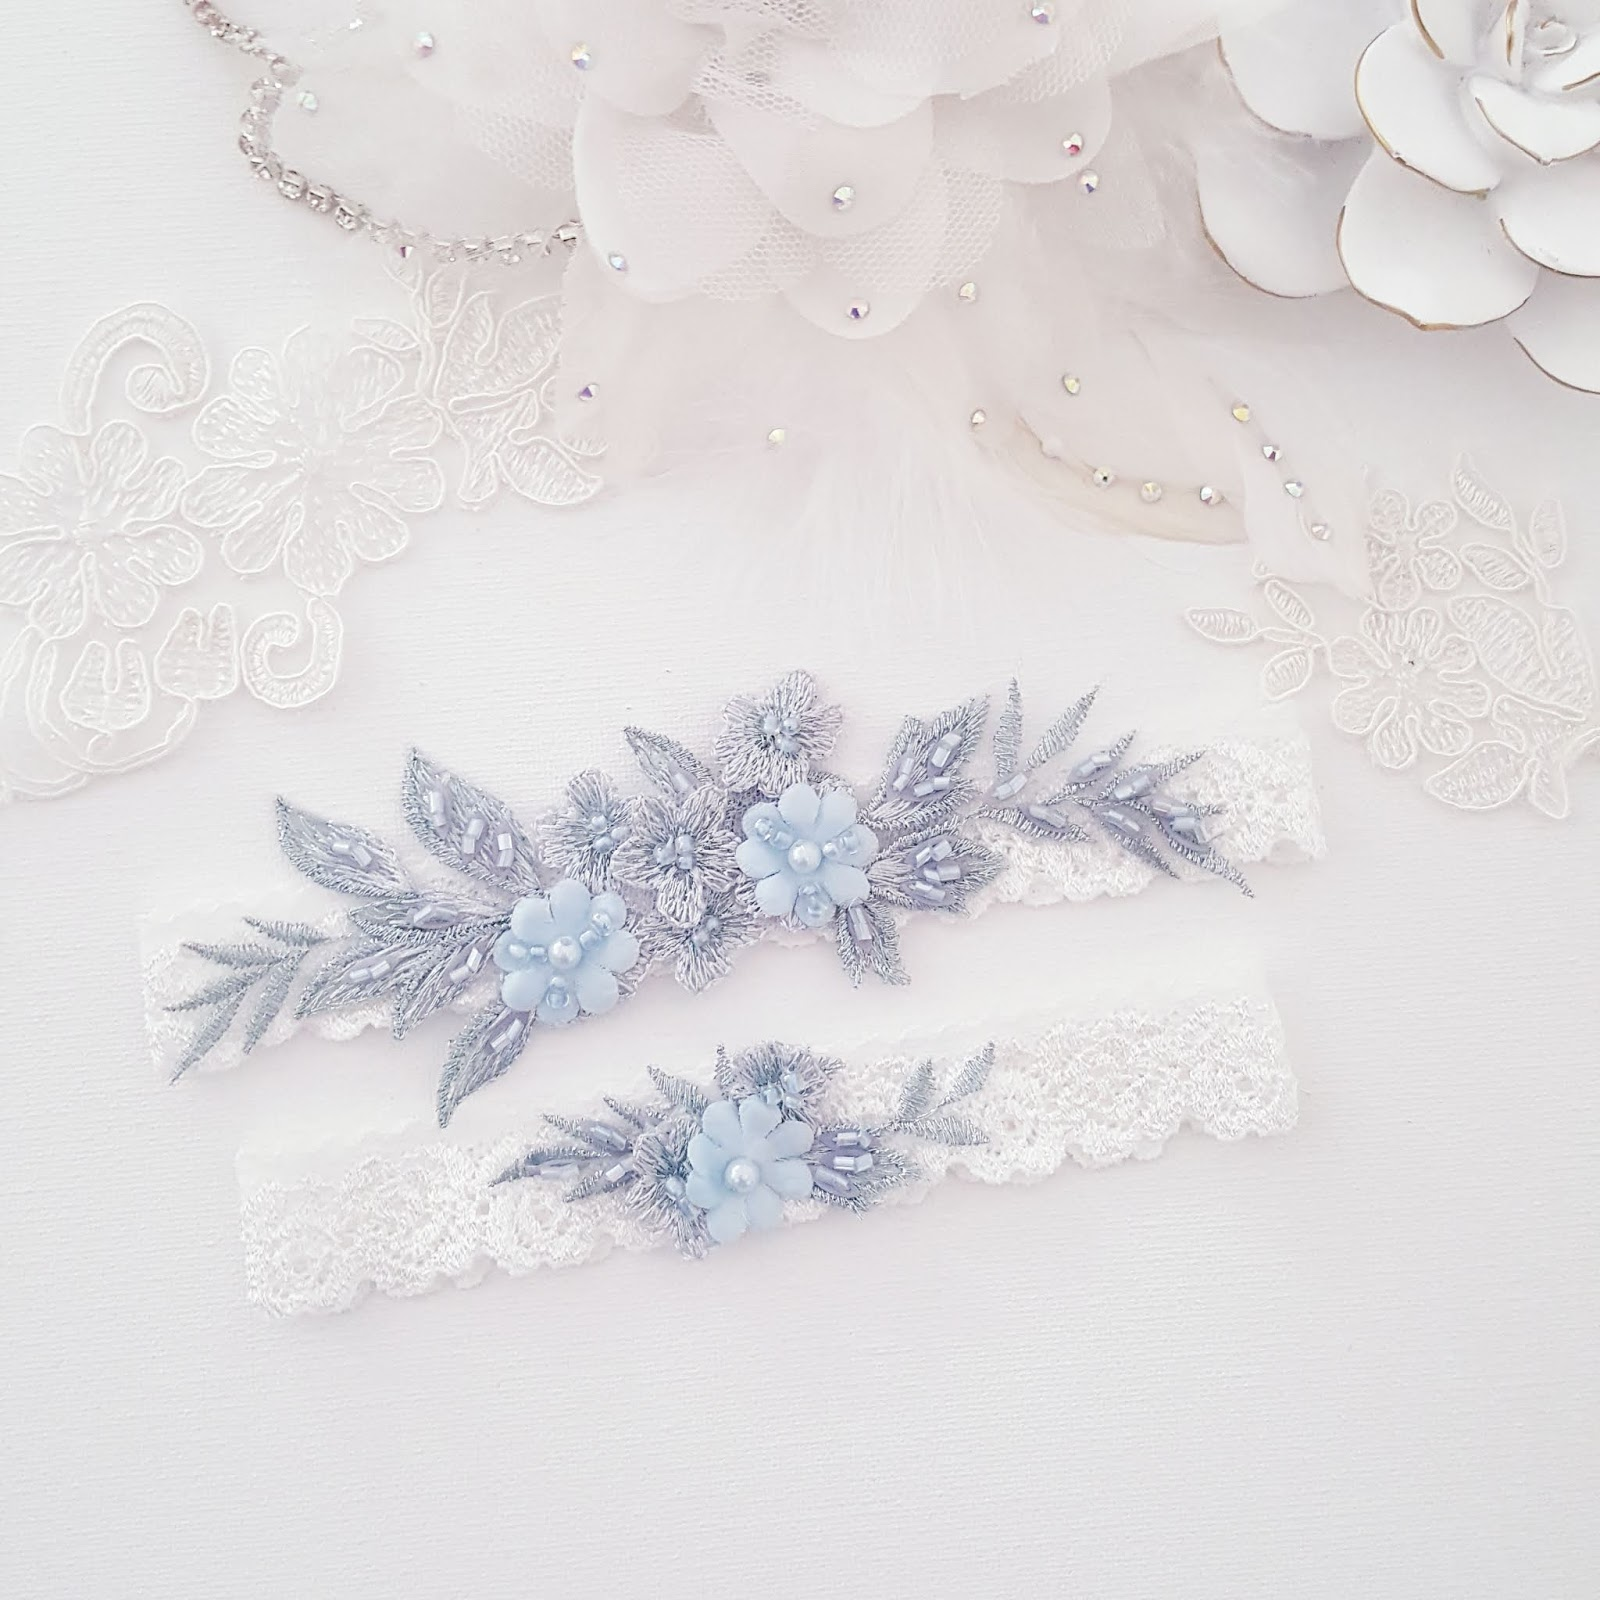 This beautiful handmade bridal garter is adorned with lace applique in a botanical theme, it's the perfect something blue for your wedding. This bridal garter set is one of many wedding accessories from She Wore Flowers.